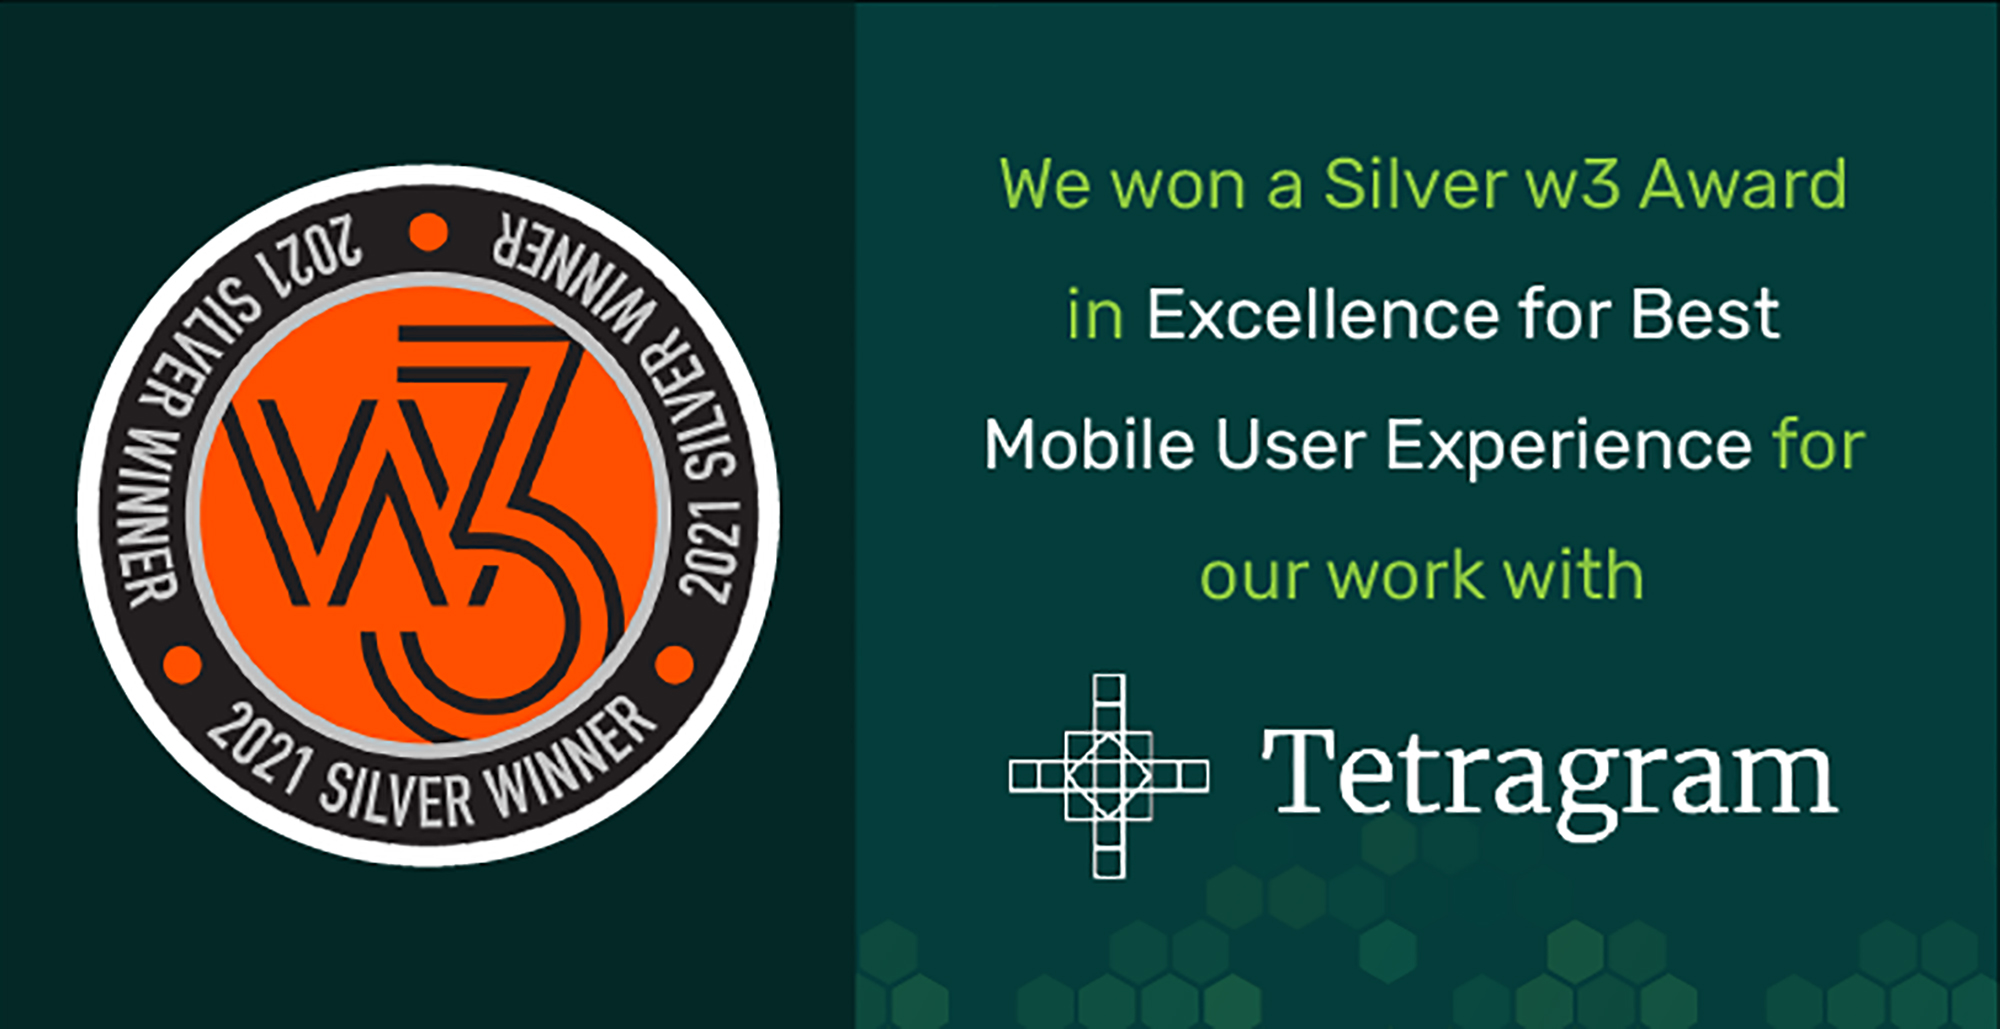 Image of text reads: 2021 Silver Winner We won a Silver w3 Award in Excellence for Best Mobile User Experience for our work with Tetragram